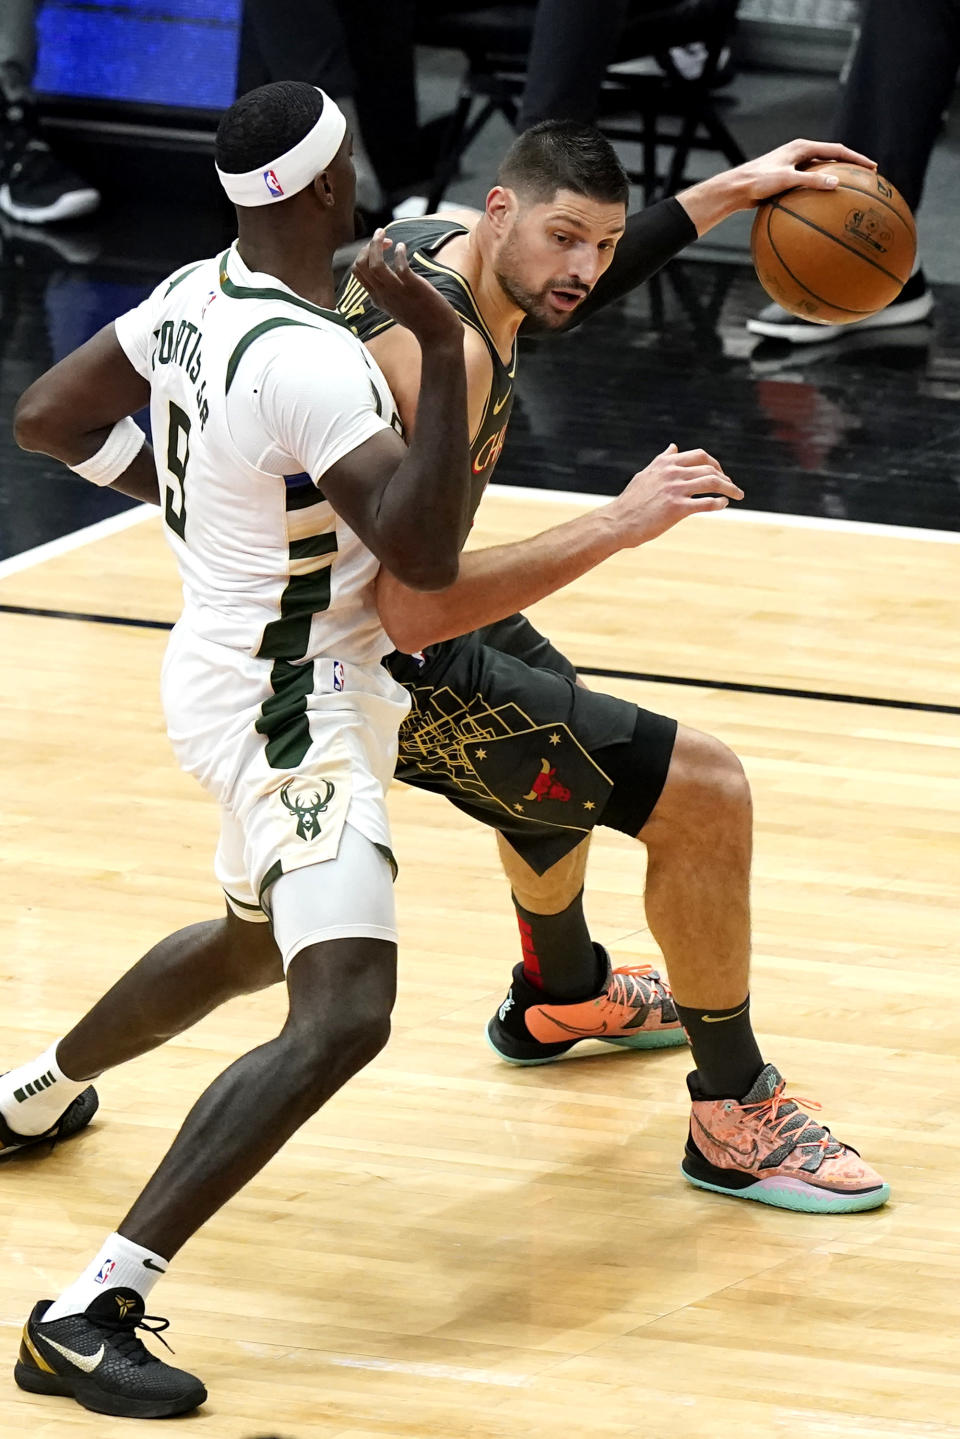 Chicago Bulls center Nikola Vucevic, right, drives against Milwaukee Bucks center Bobby Portis during the first half of an NBA basketball game in Chicago, Friday, April 30, 2021. (AP Photo/Nam Y. Huh)